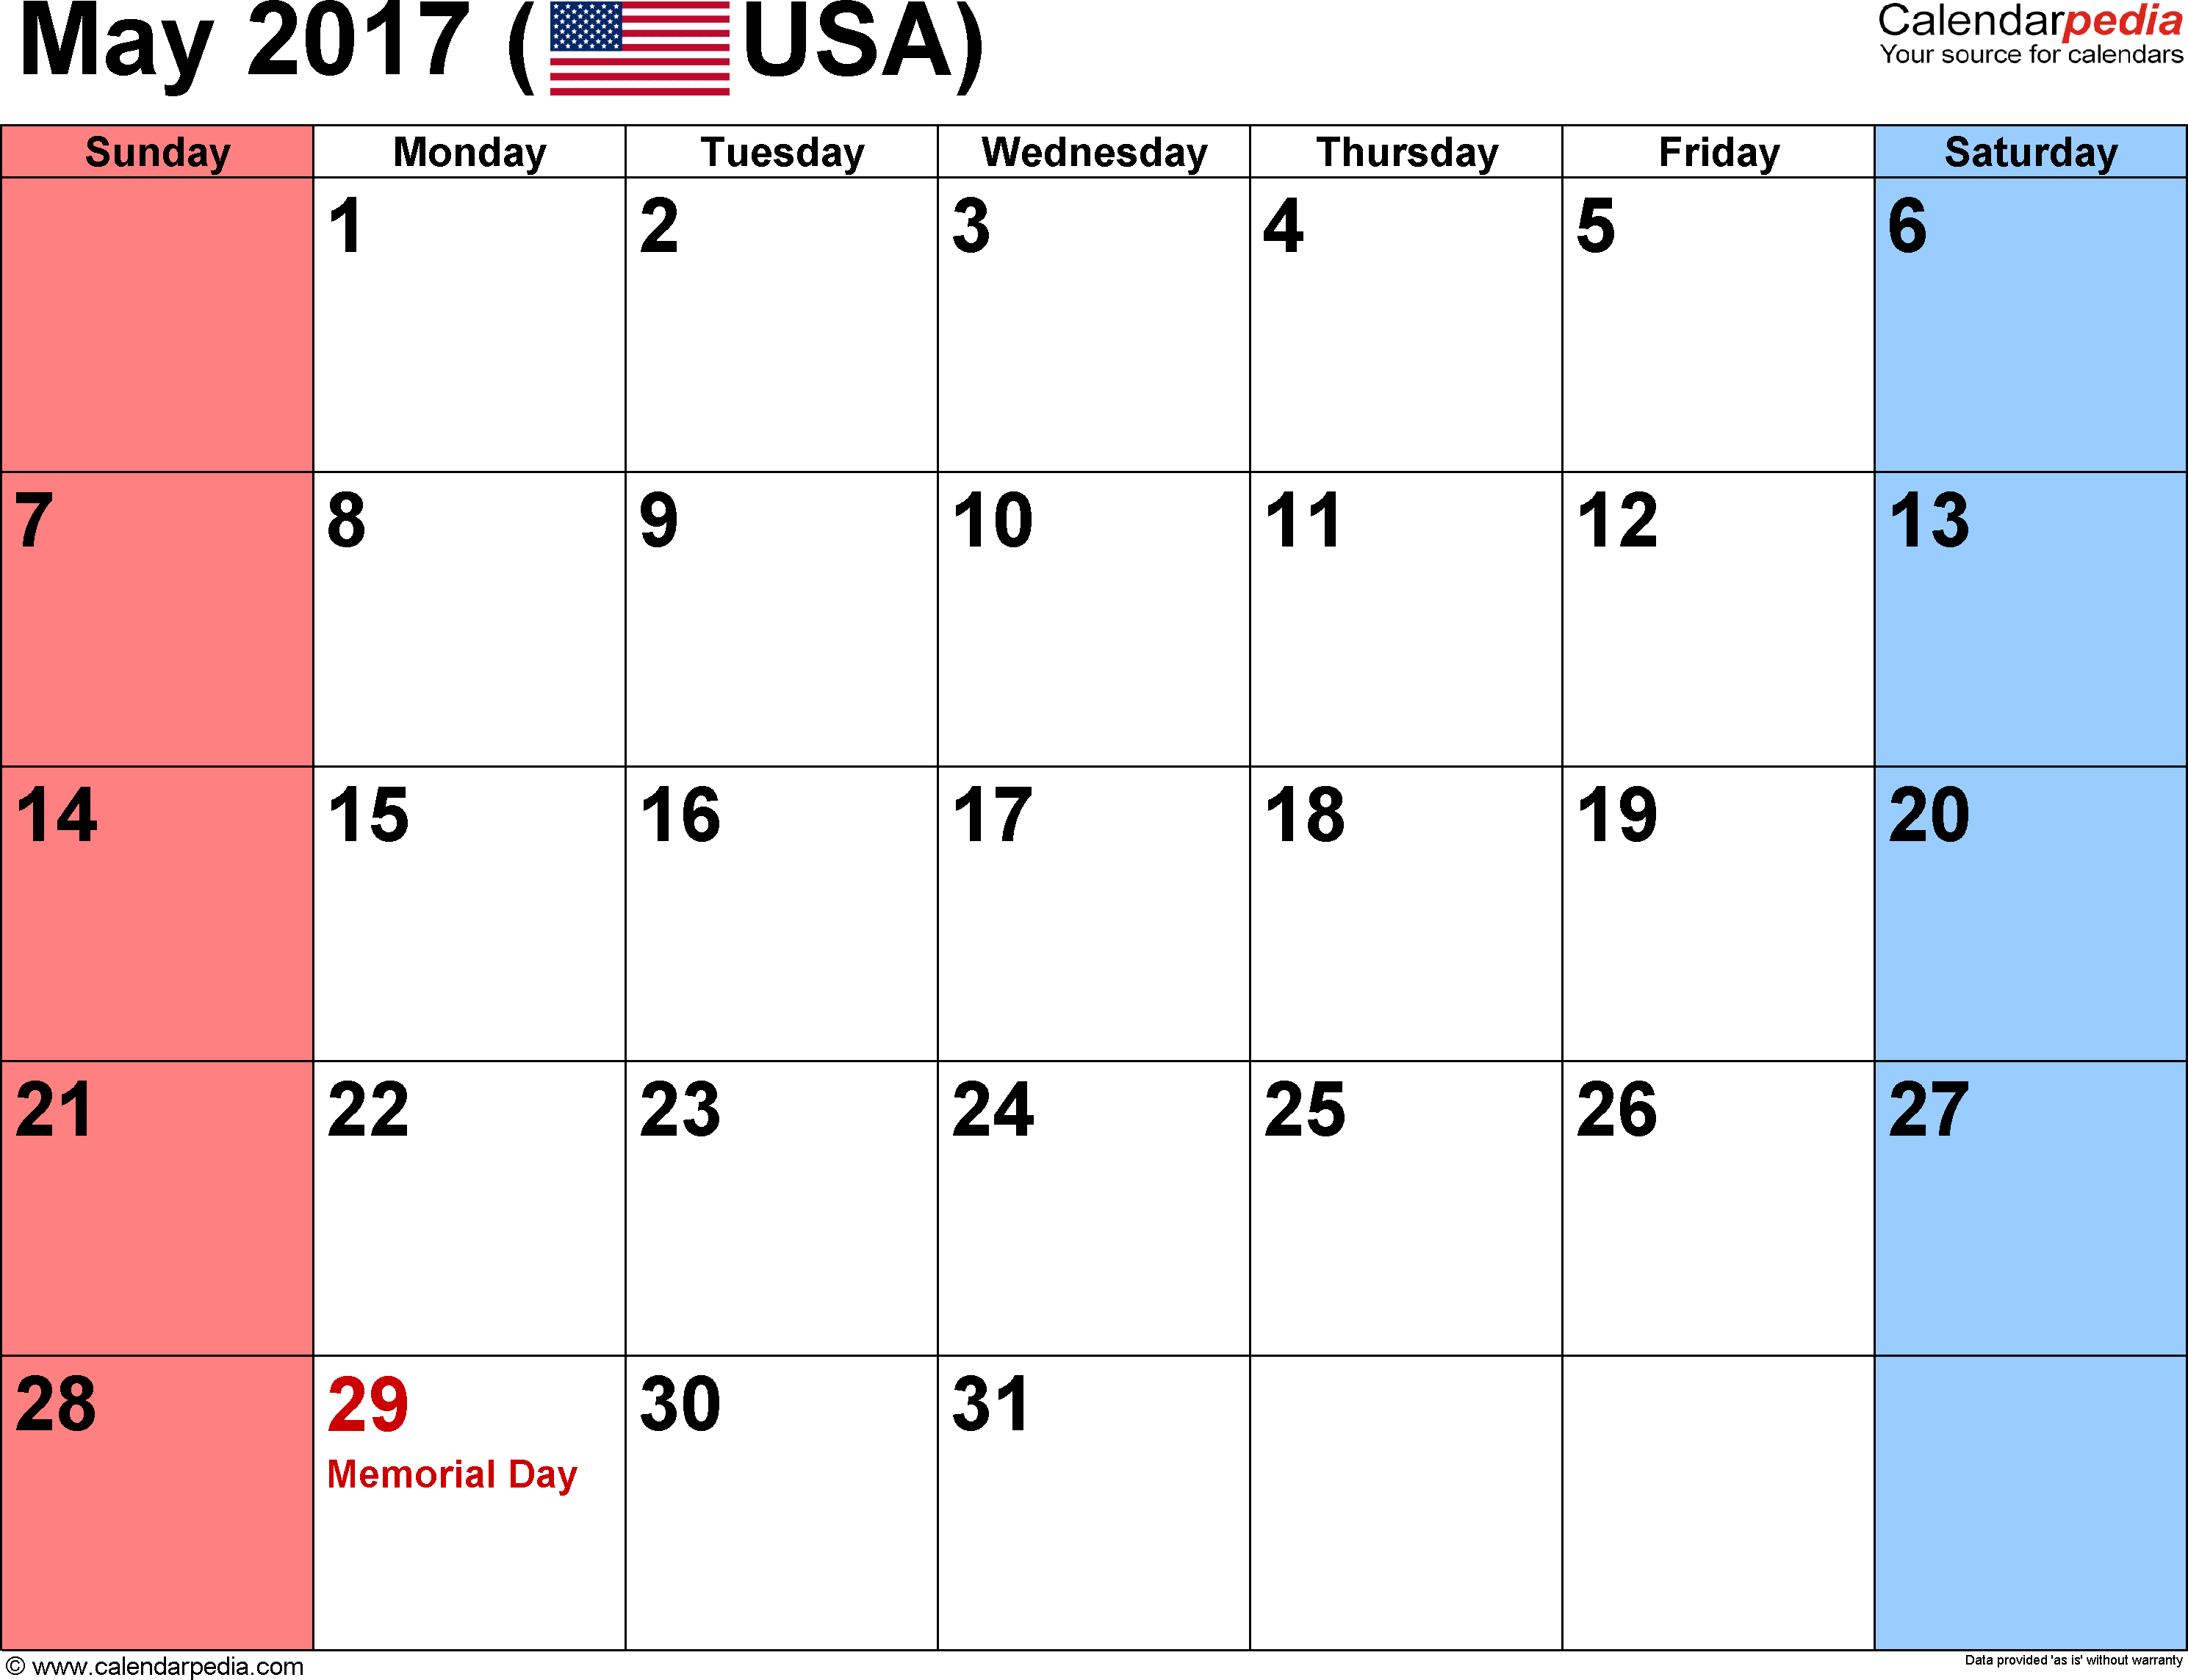 May 2017 Calendar may 2017 calendars for word, excel & pdf